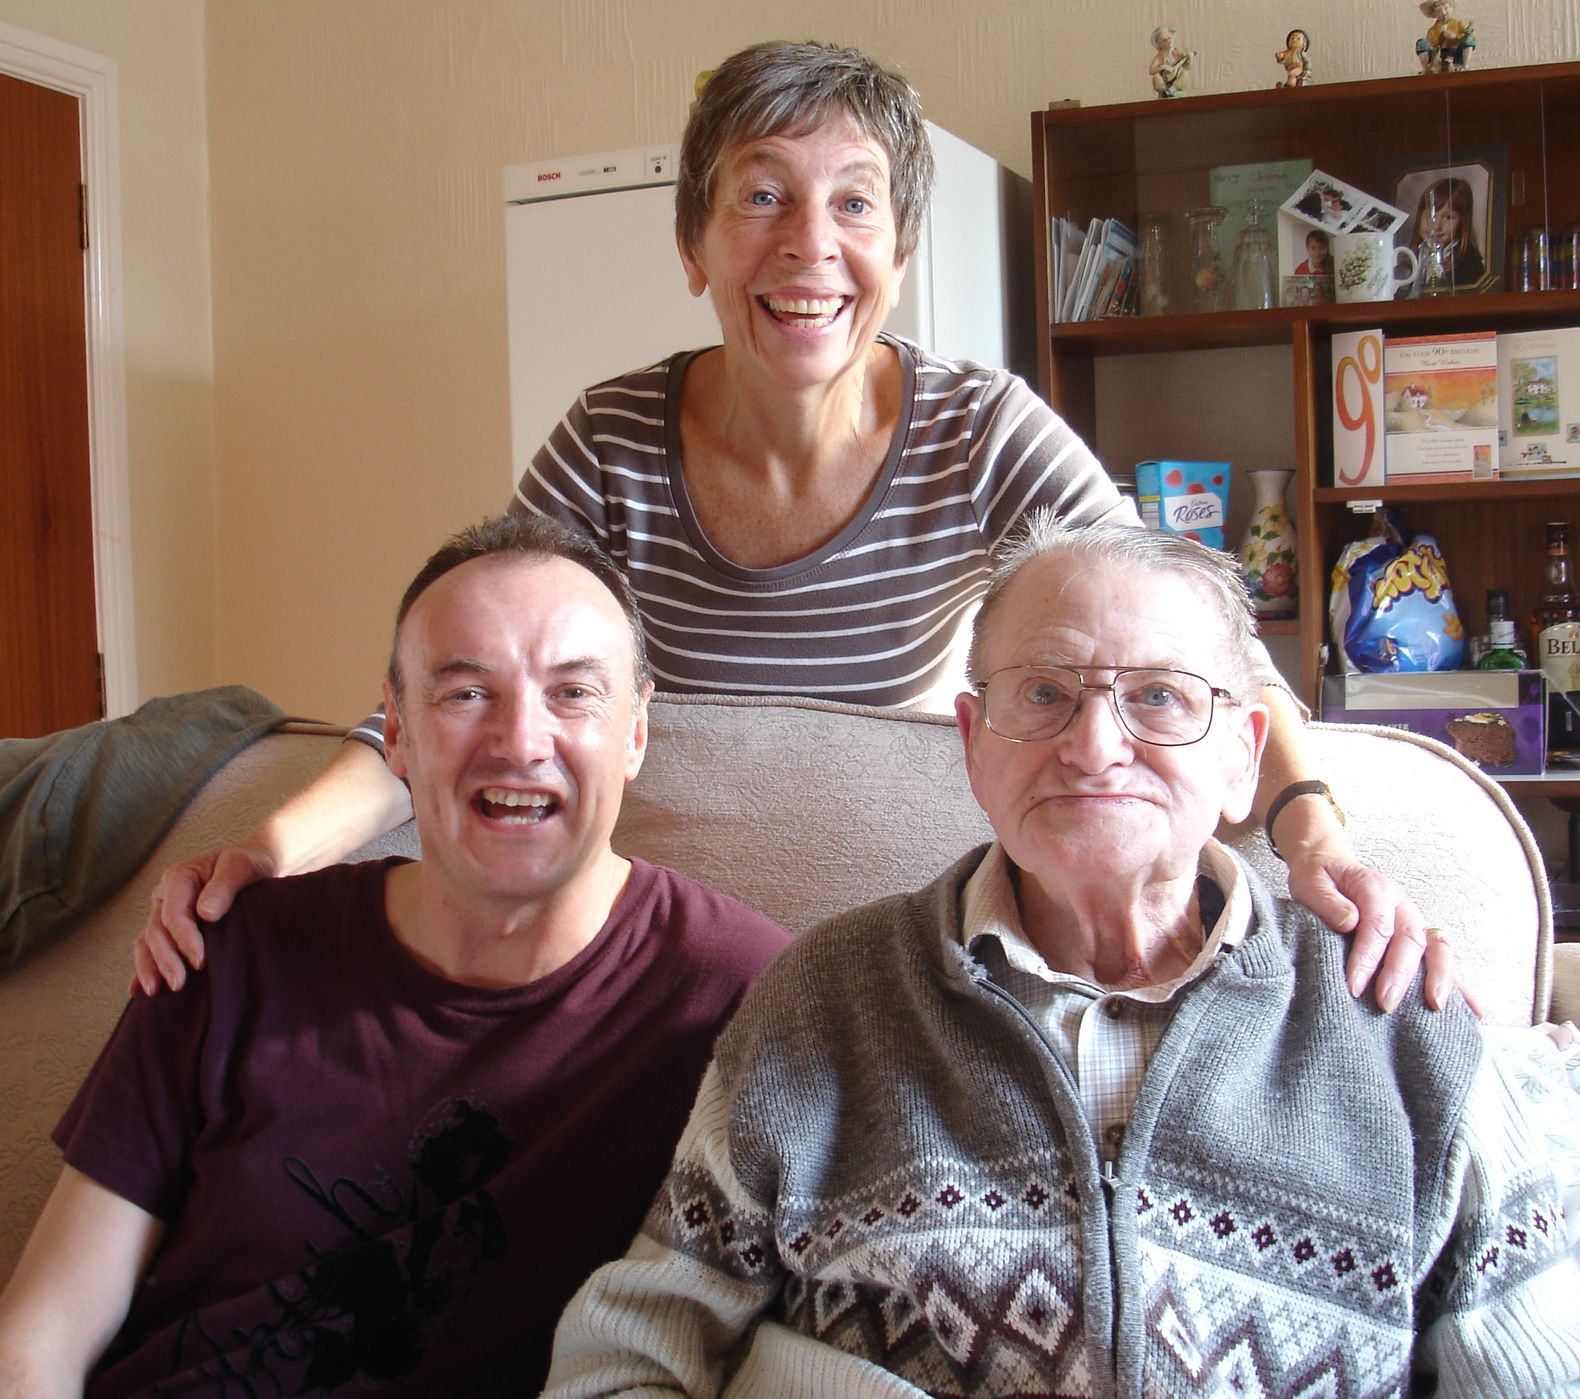 Home Instead Sheffield CAREgiver Gary Eato providing a personal care visit to 90-year-old client Cyril Crookes and his daughter Sandra on his birthday